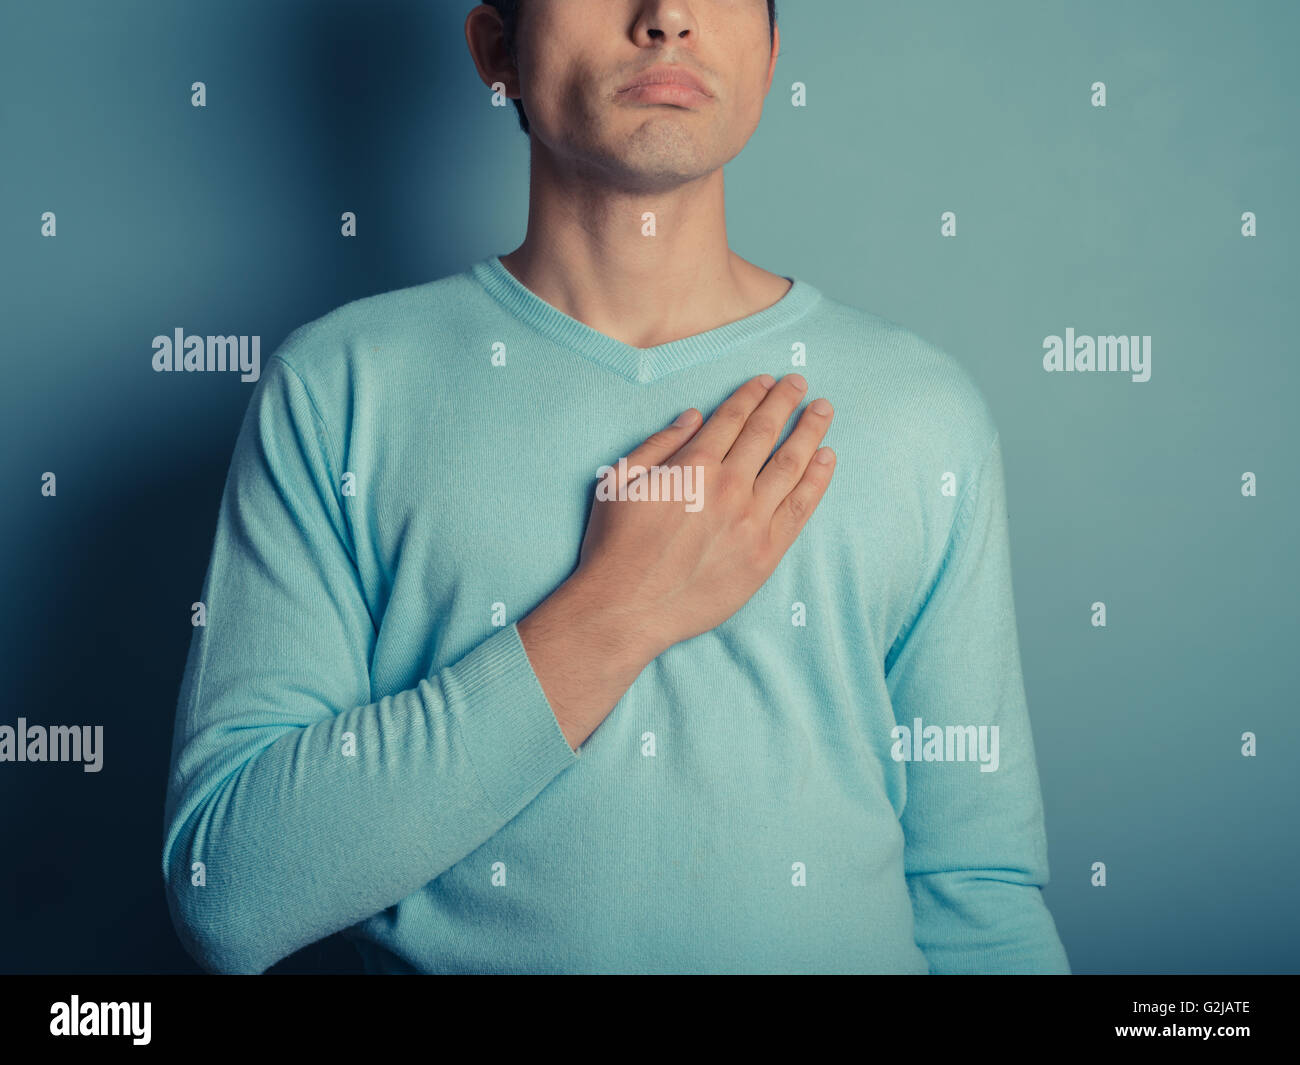 A young man wearing a blue jumper is placing his hand on his chest - Stock Image